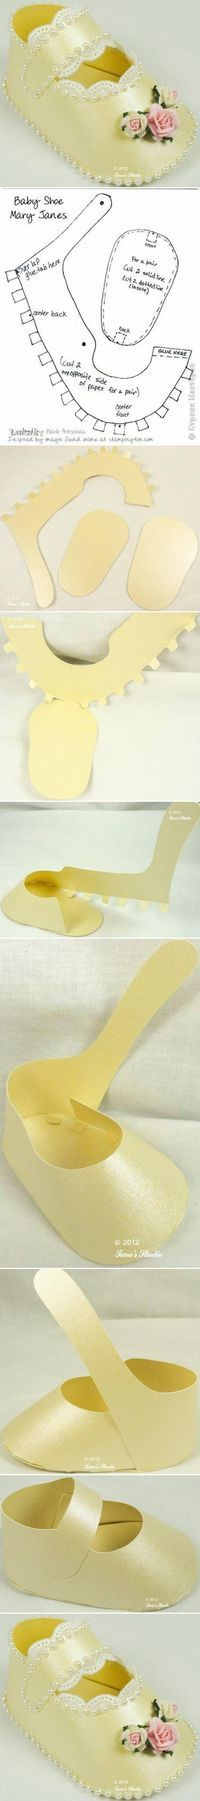 DIY Adorable Baby Shoes by fani geor